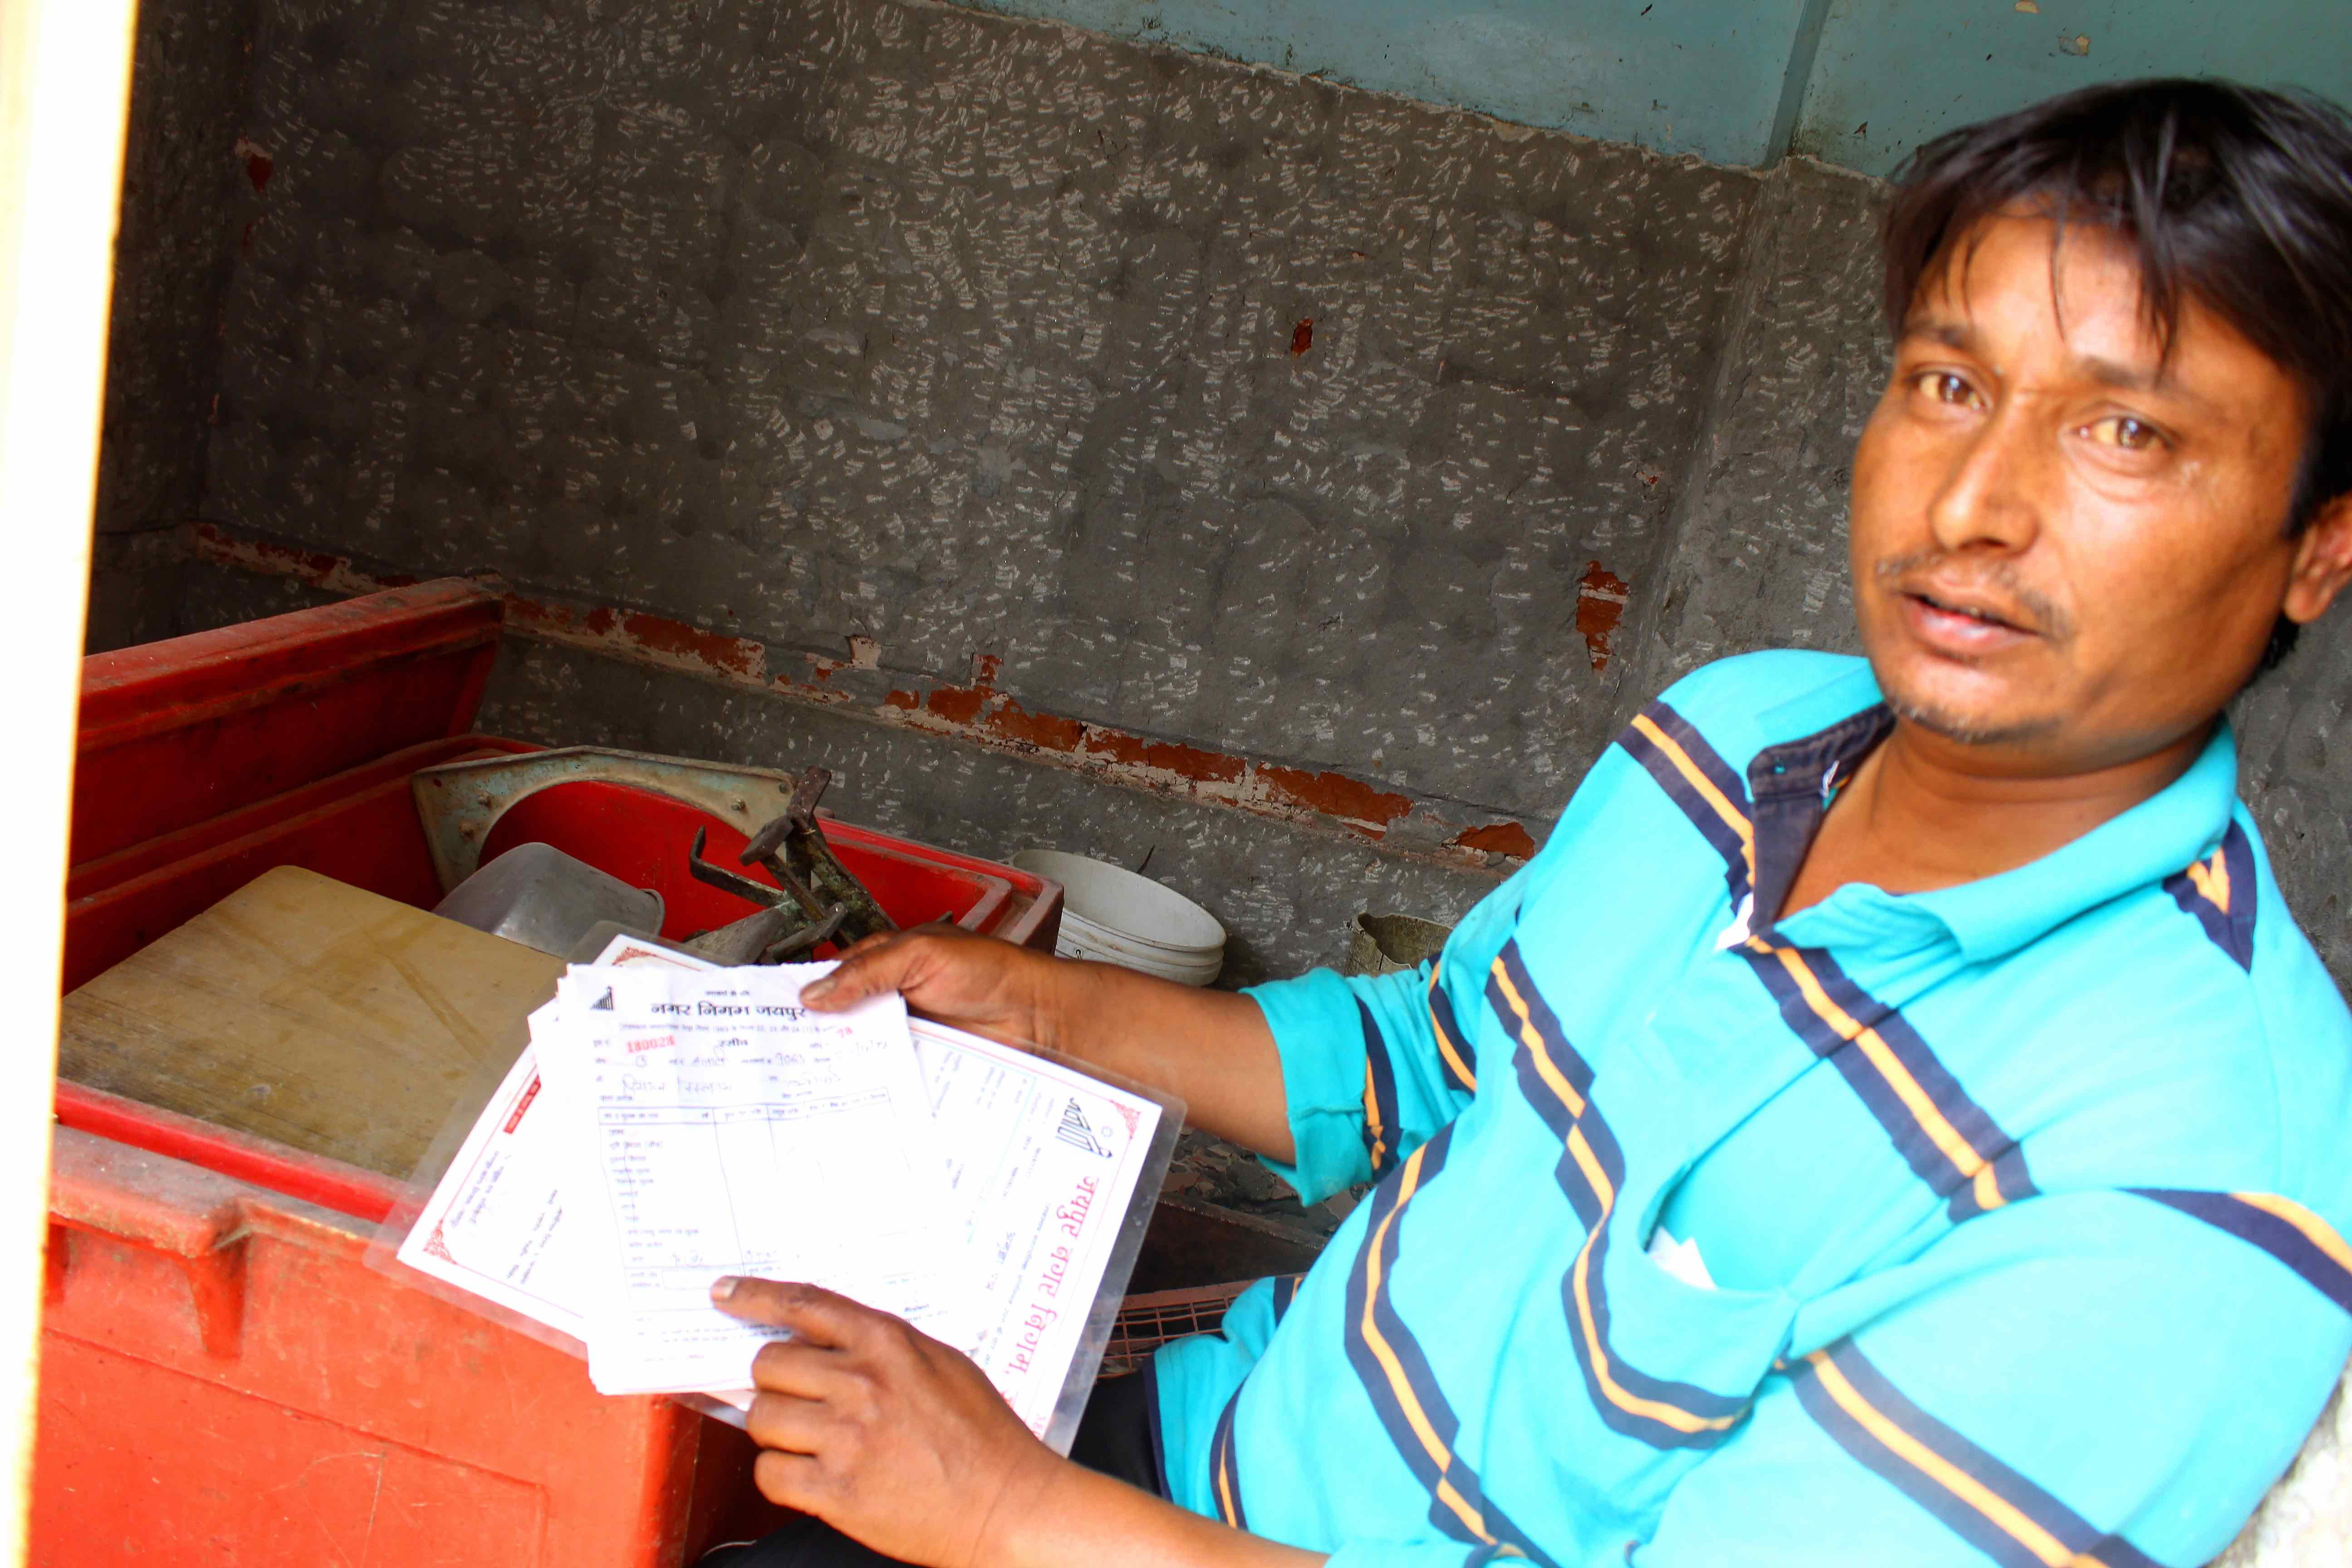 Riyazuddin Qureshi showing his licence and daily slips from the legal slaughterhouse. Credit: Shruti Jain